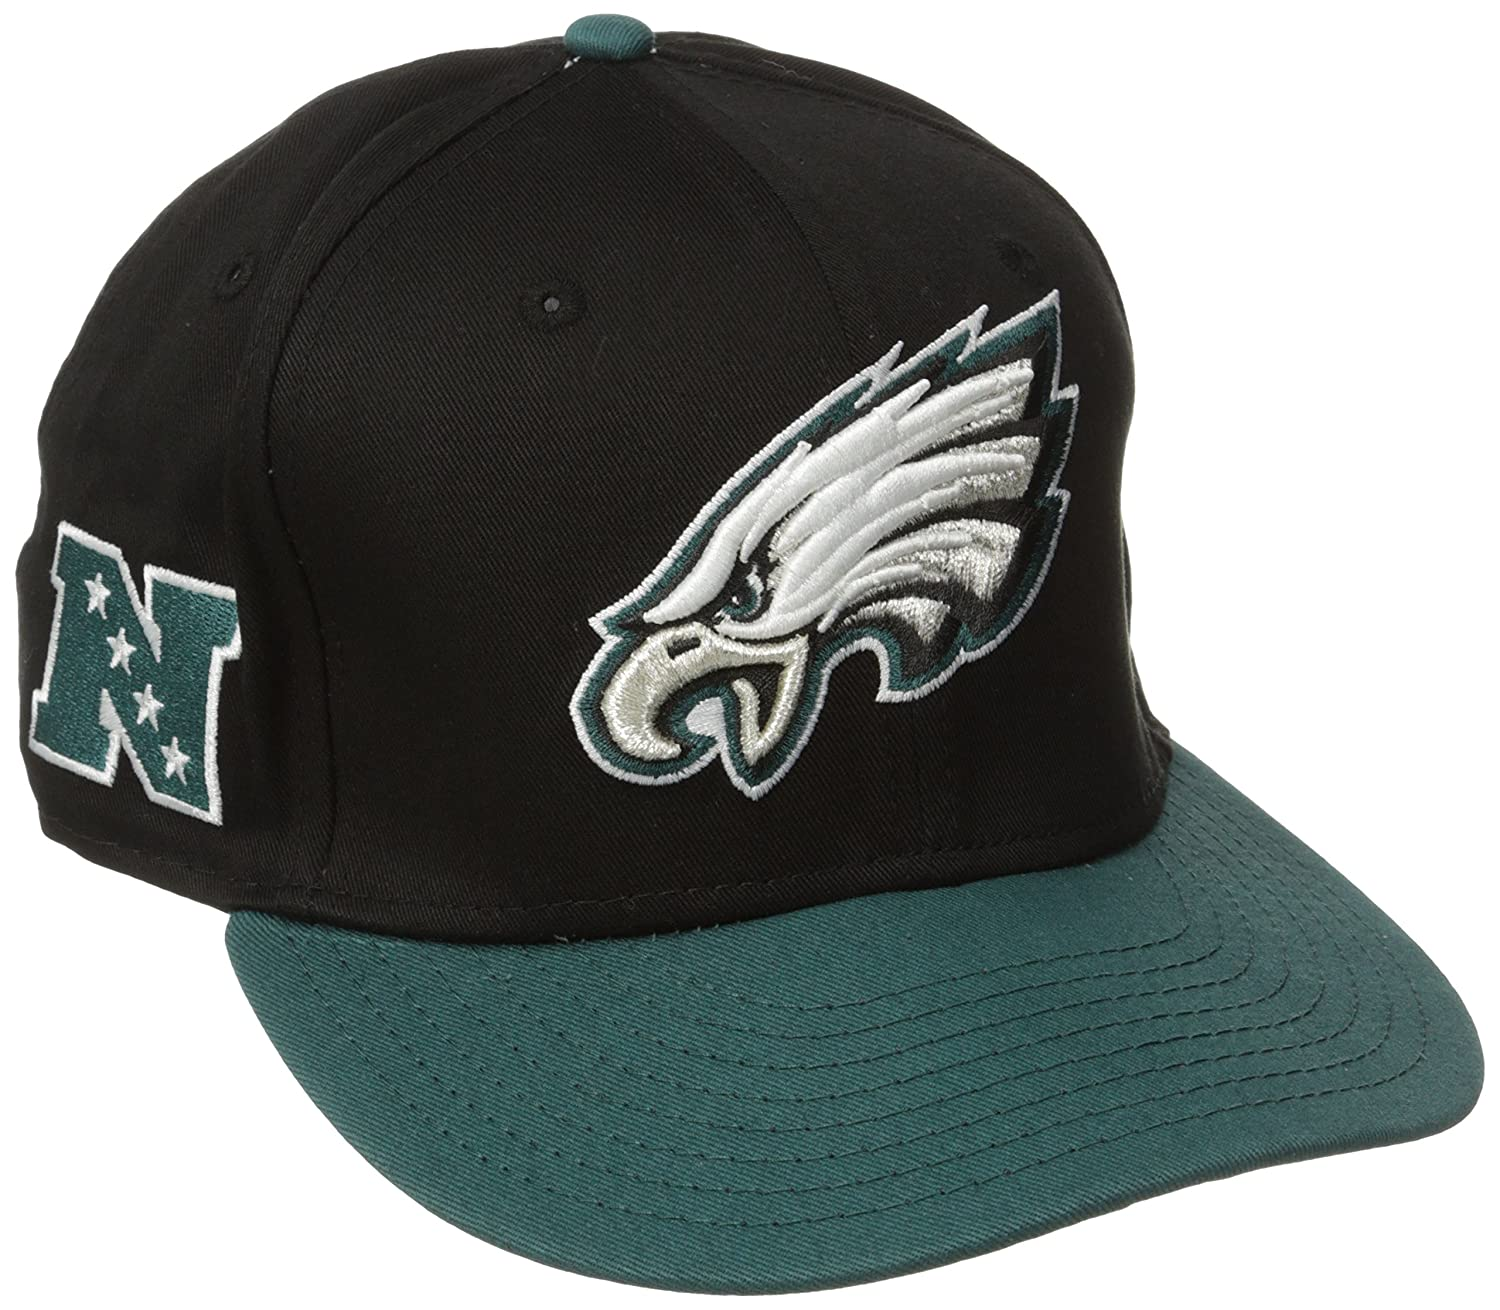 f121a56b0ac Amazon.com   NFL Philadelphia Eagles Baycik 9Fifty Snapback Hat   Sports  Fan Baseball Caps   Clothing